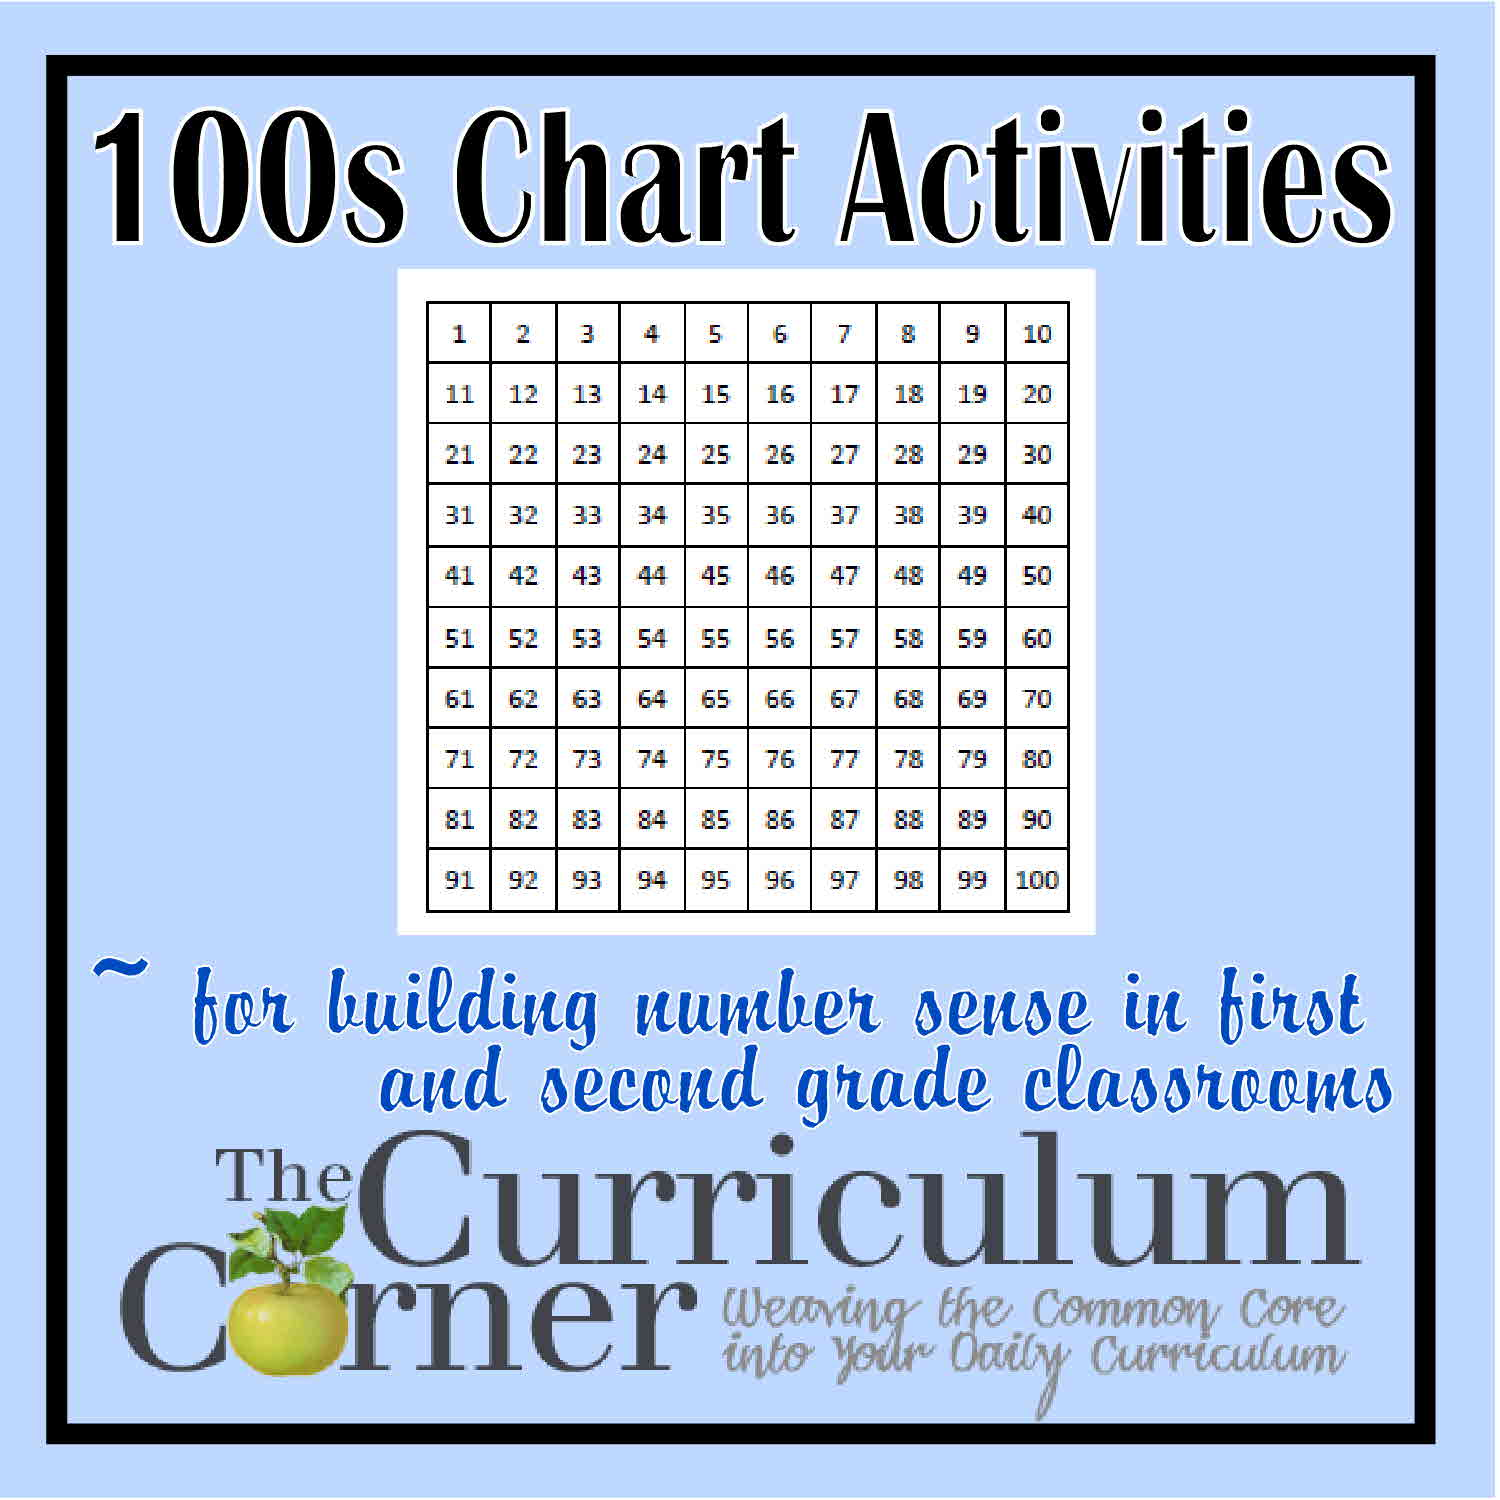 100s Chart Activities The Curriculum Corner 123